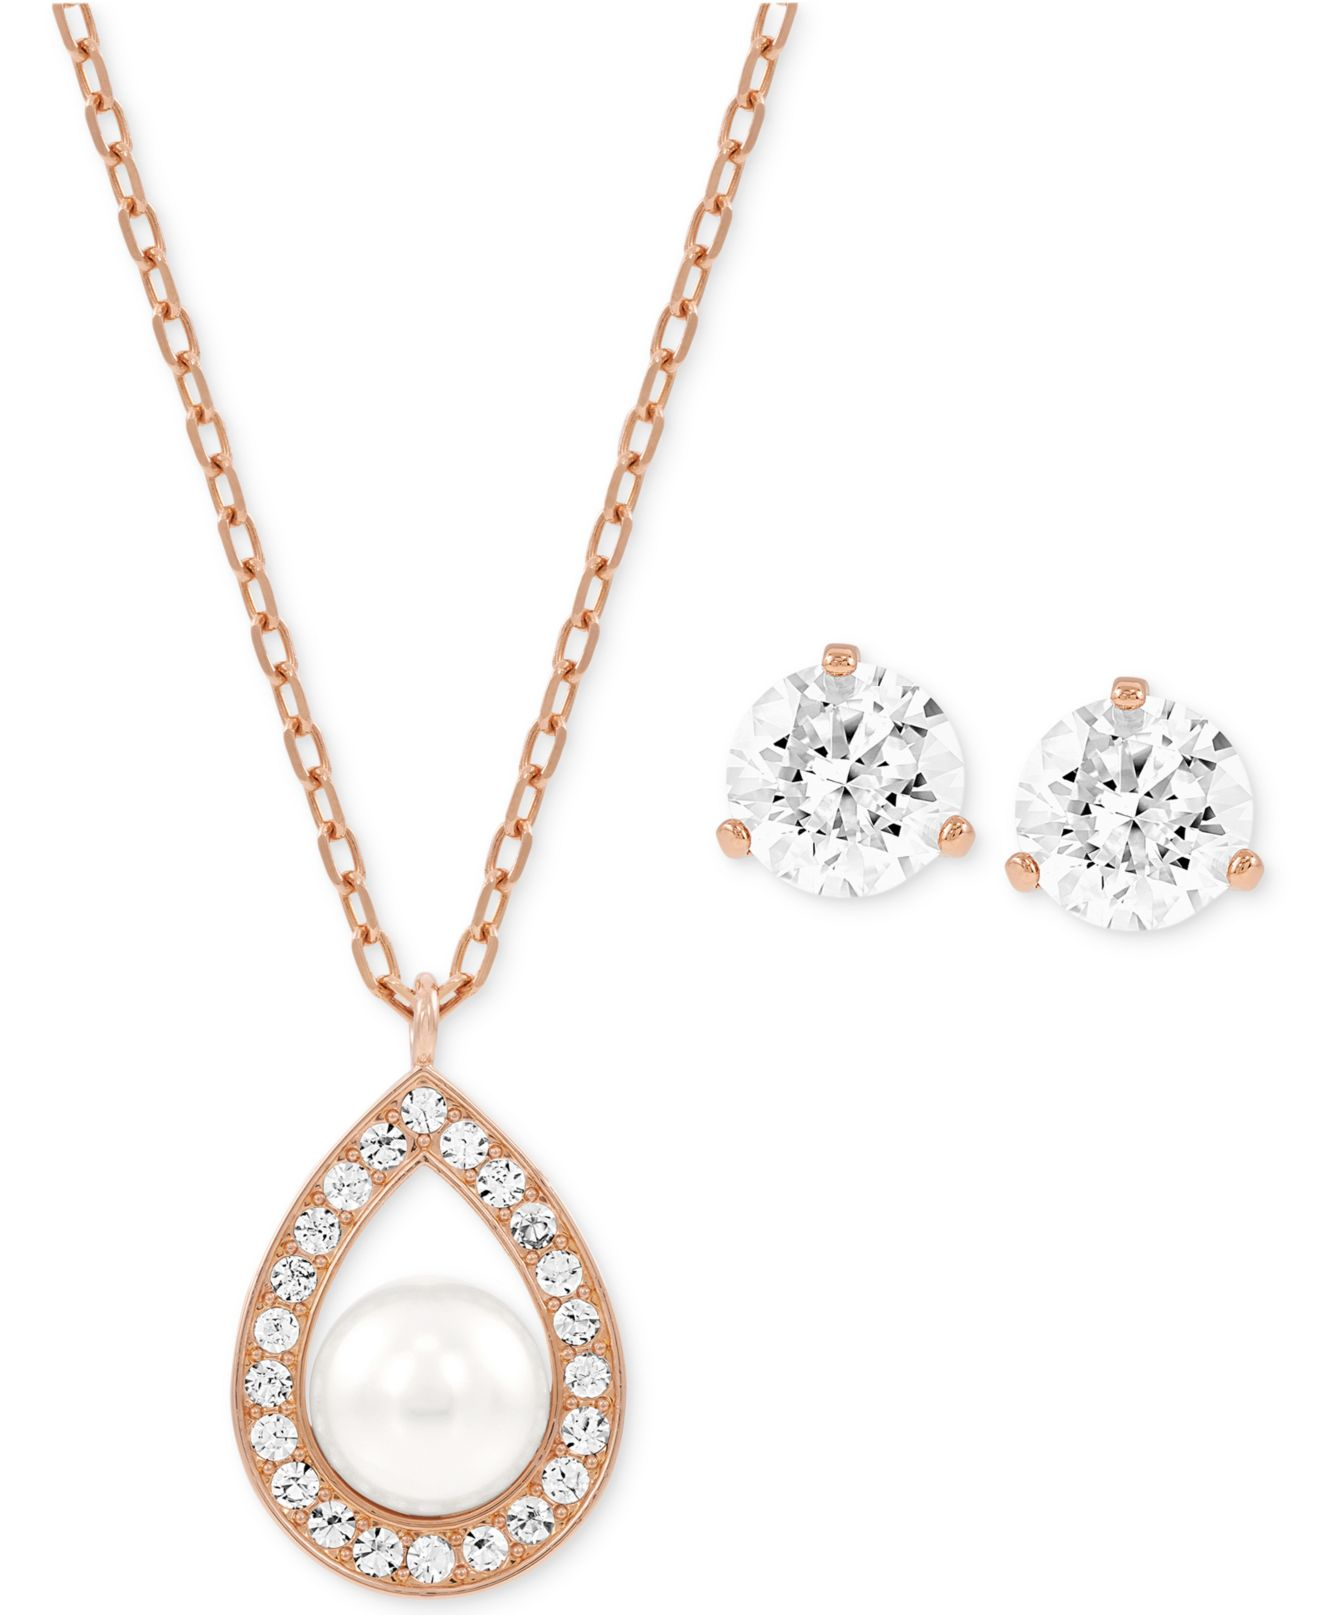 Rose Gold Tone Crystal Pearl Pendant Necklace And Stud Earring Set